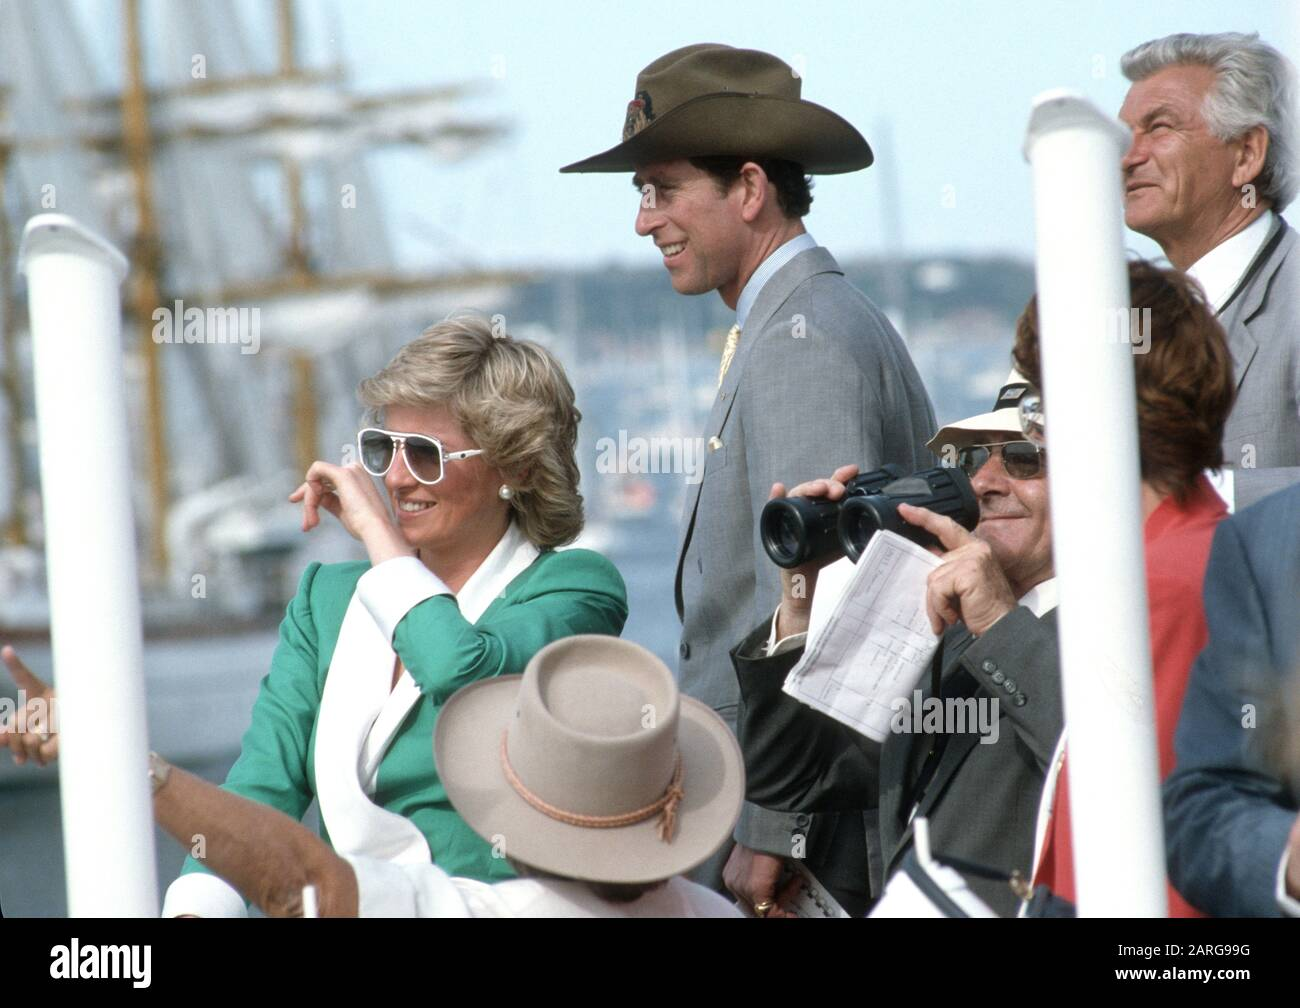 hrh prince charles and hrh princess diana attend australian bicentennial day sydney harbour during their royal tour of australia january 1988 stock photo alamy https www alamy com hrh prince charles and hrh princess diana attend australian bicentennial day sydney harbour during their royal tour of australia january 1988 image341492636 html